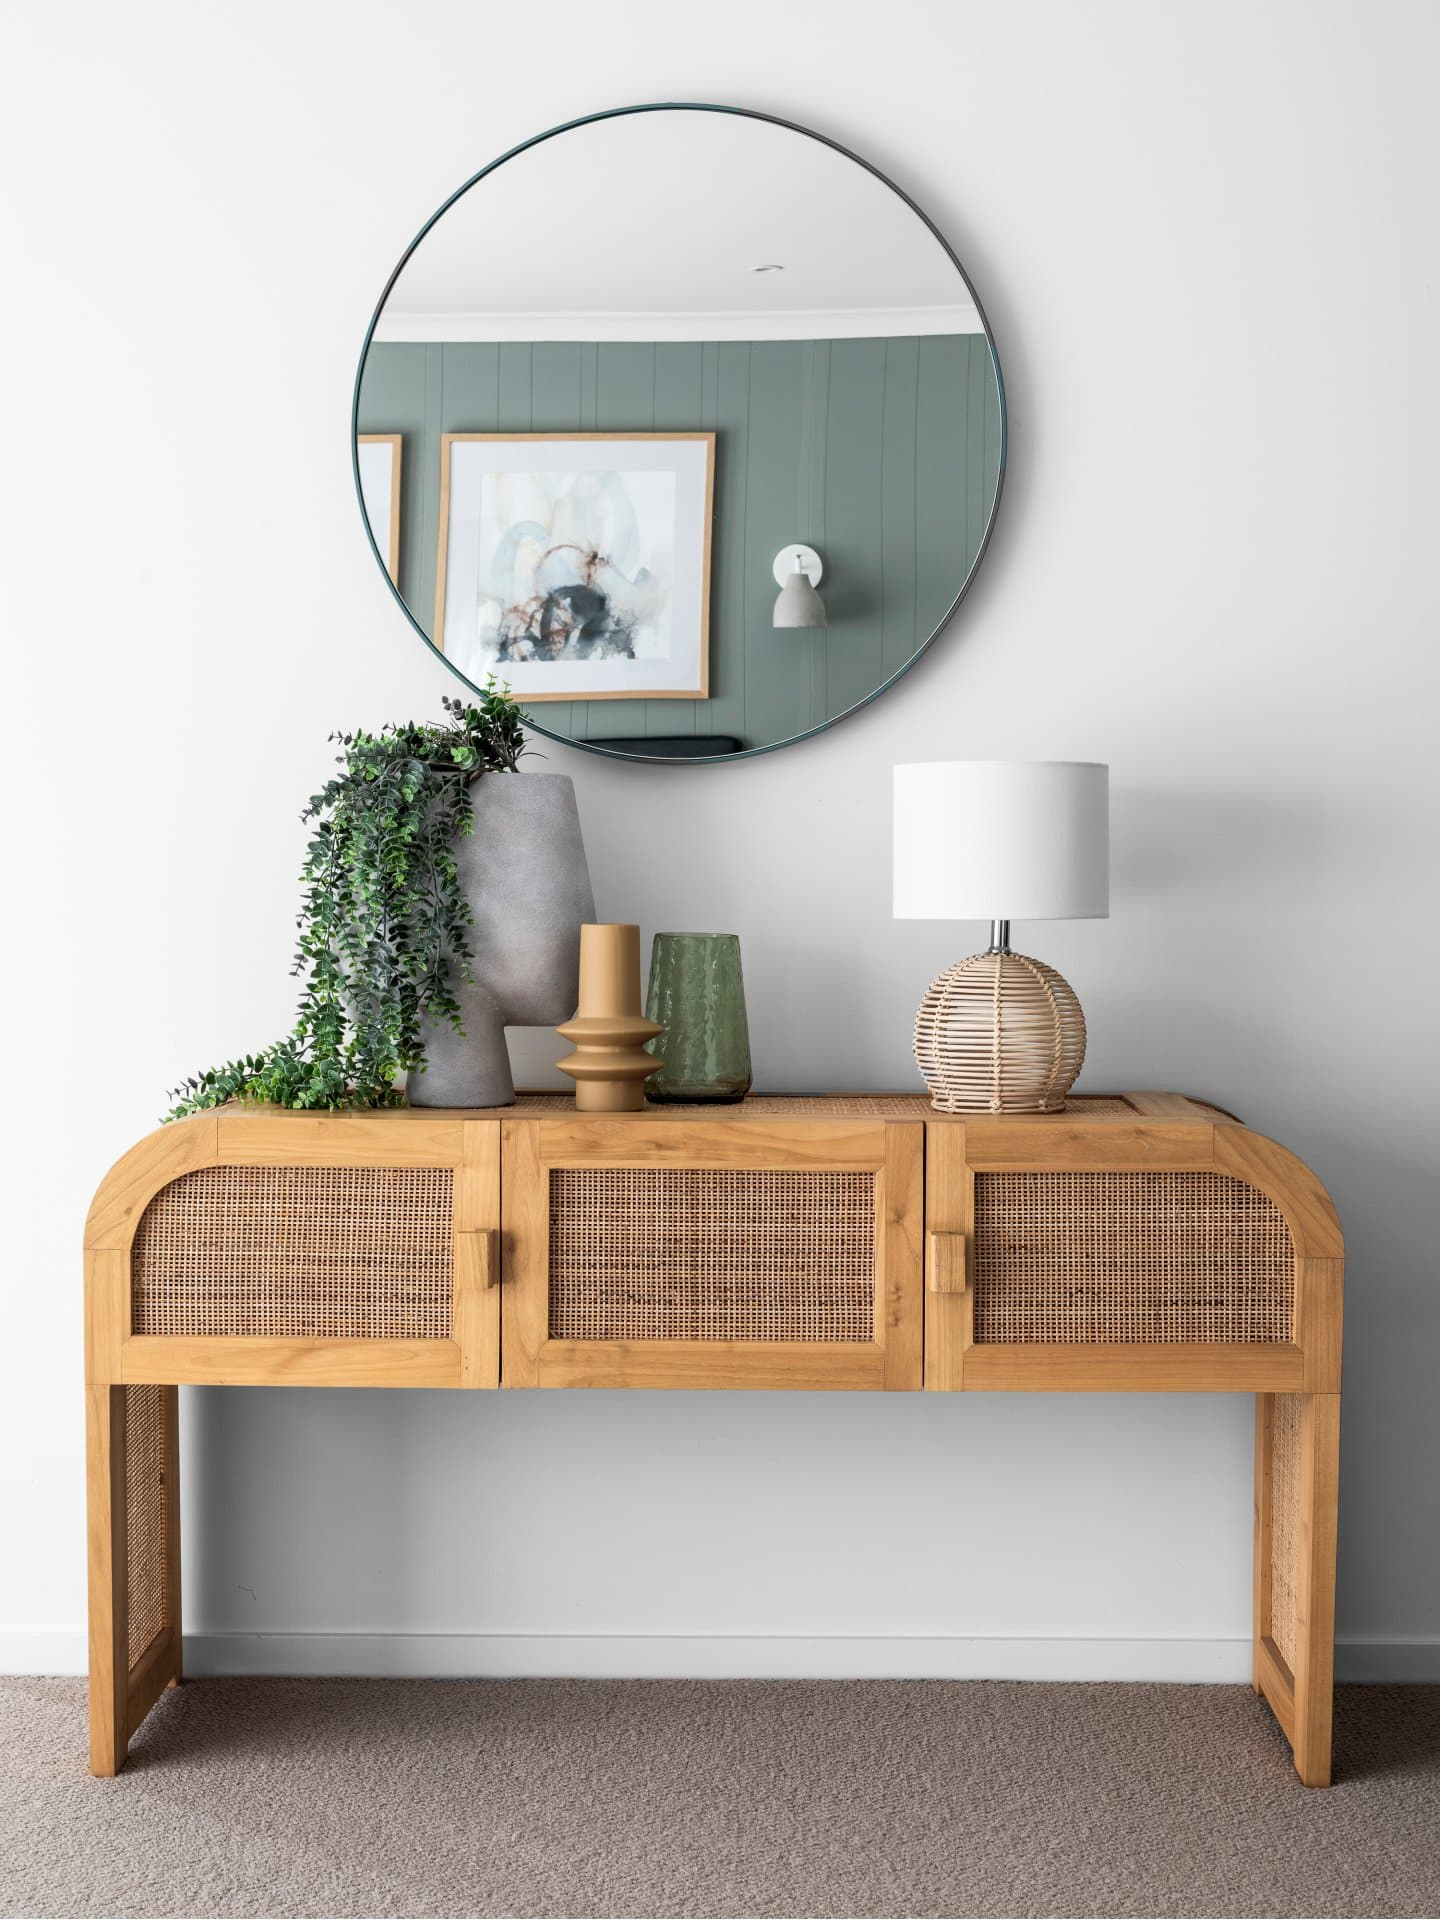 rattan curved console table with round mirror above styled with coastal table lamp and concrete vase